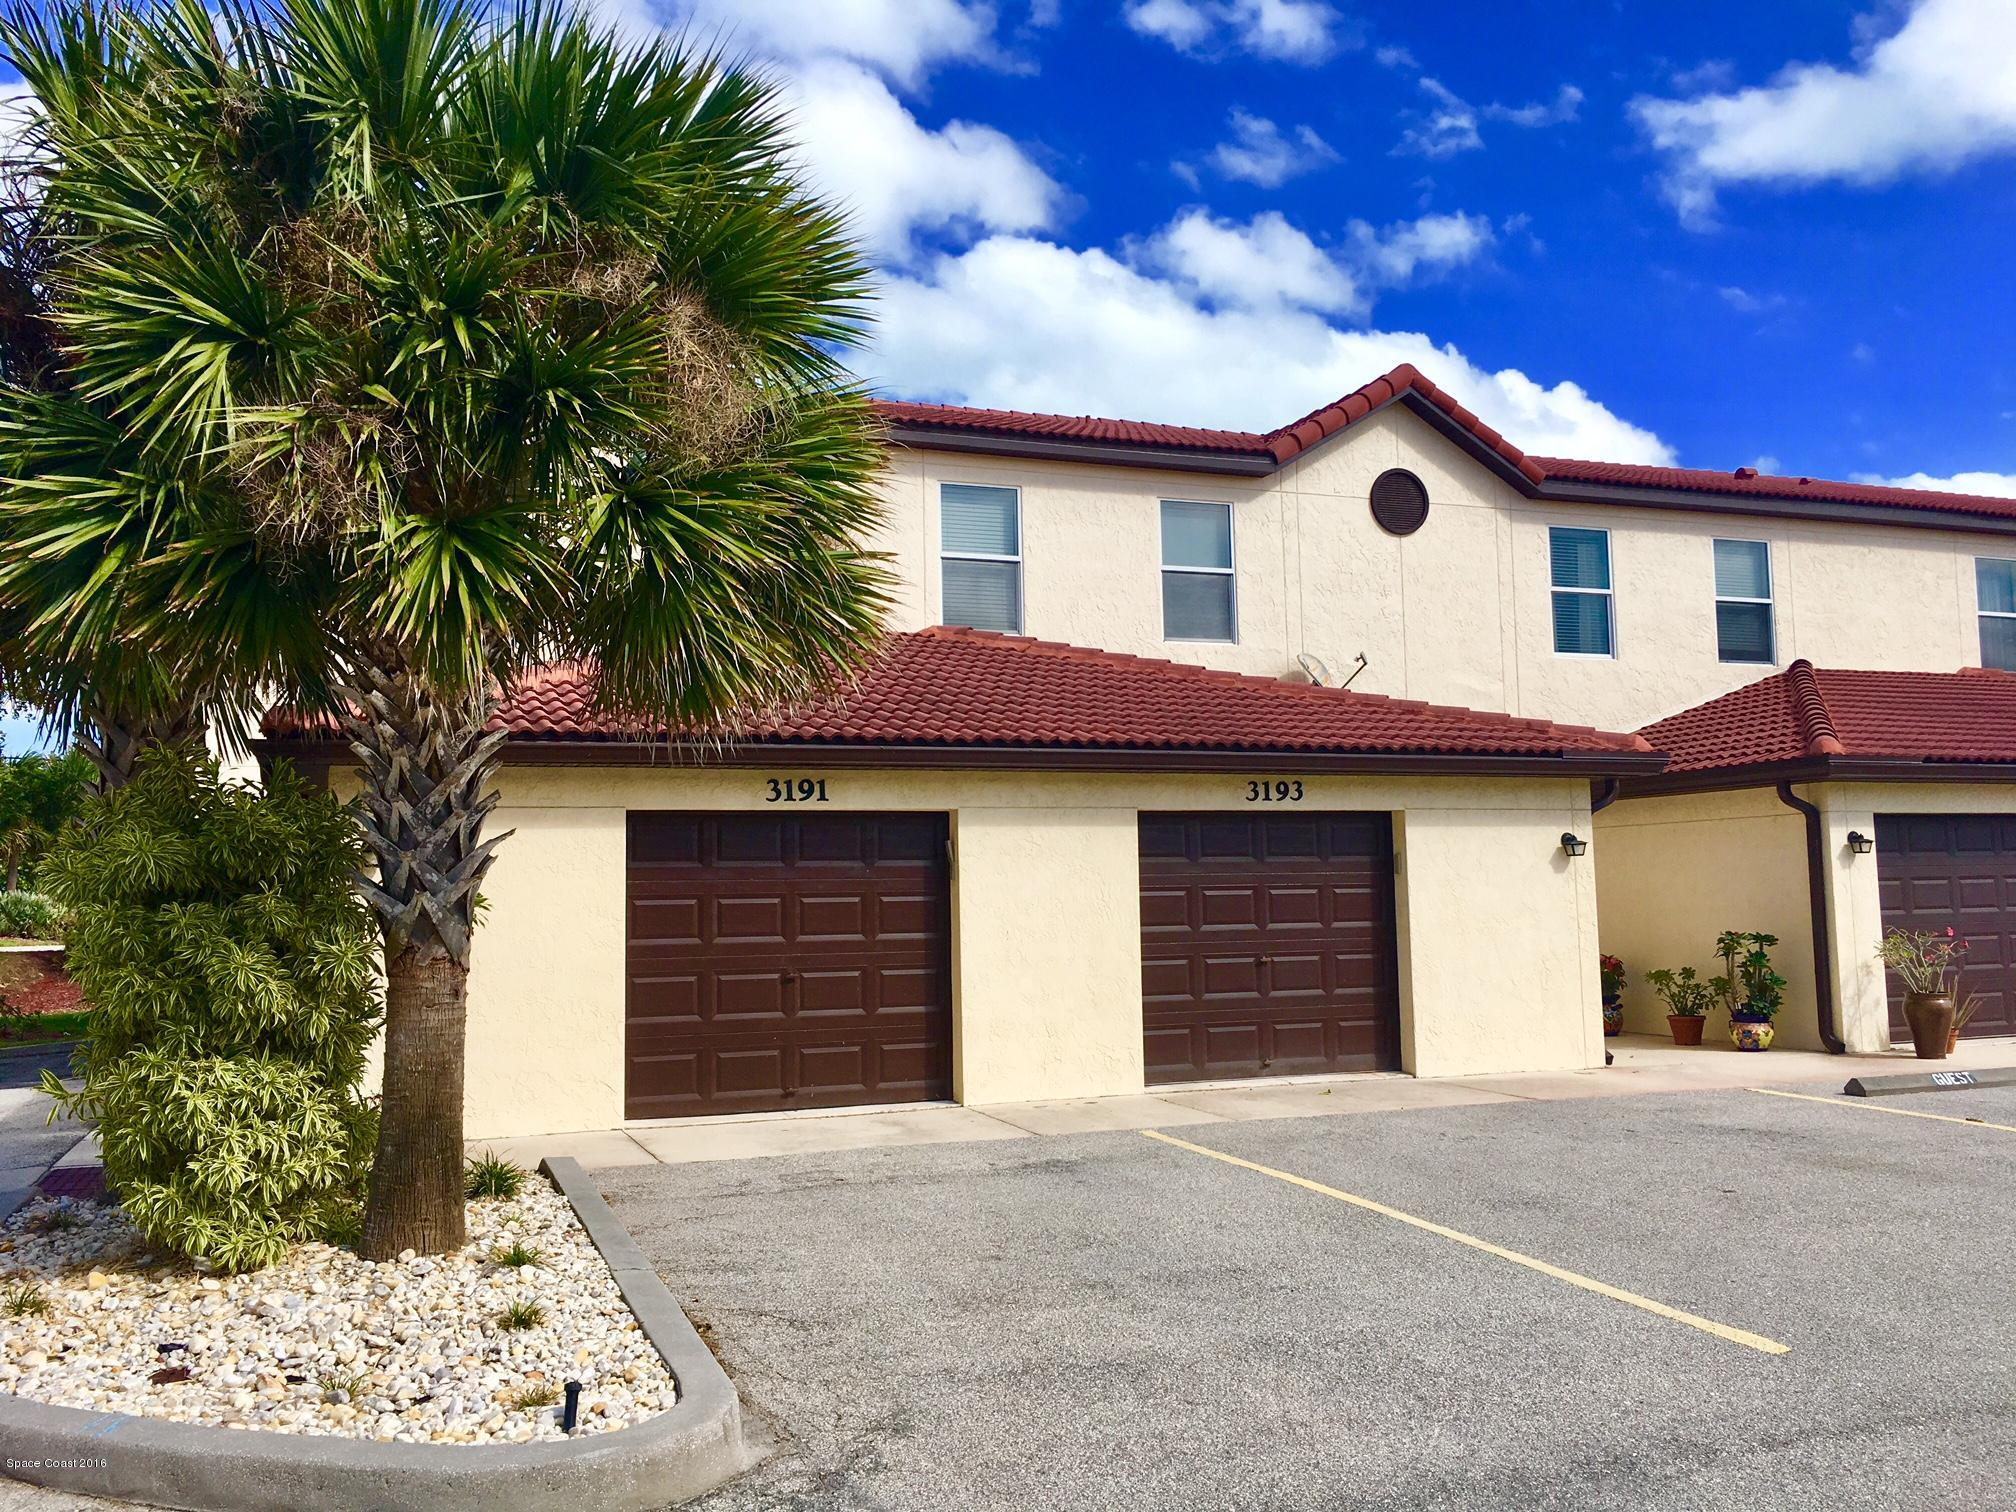 Single Family Home for Sale at 3191 Ricks Melbourne Beach, Florida 32951 United States